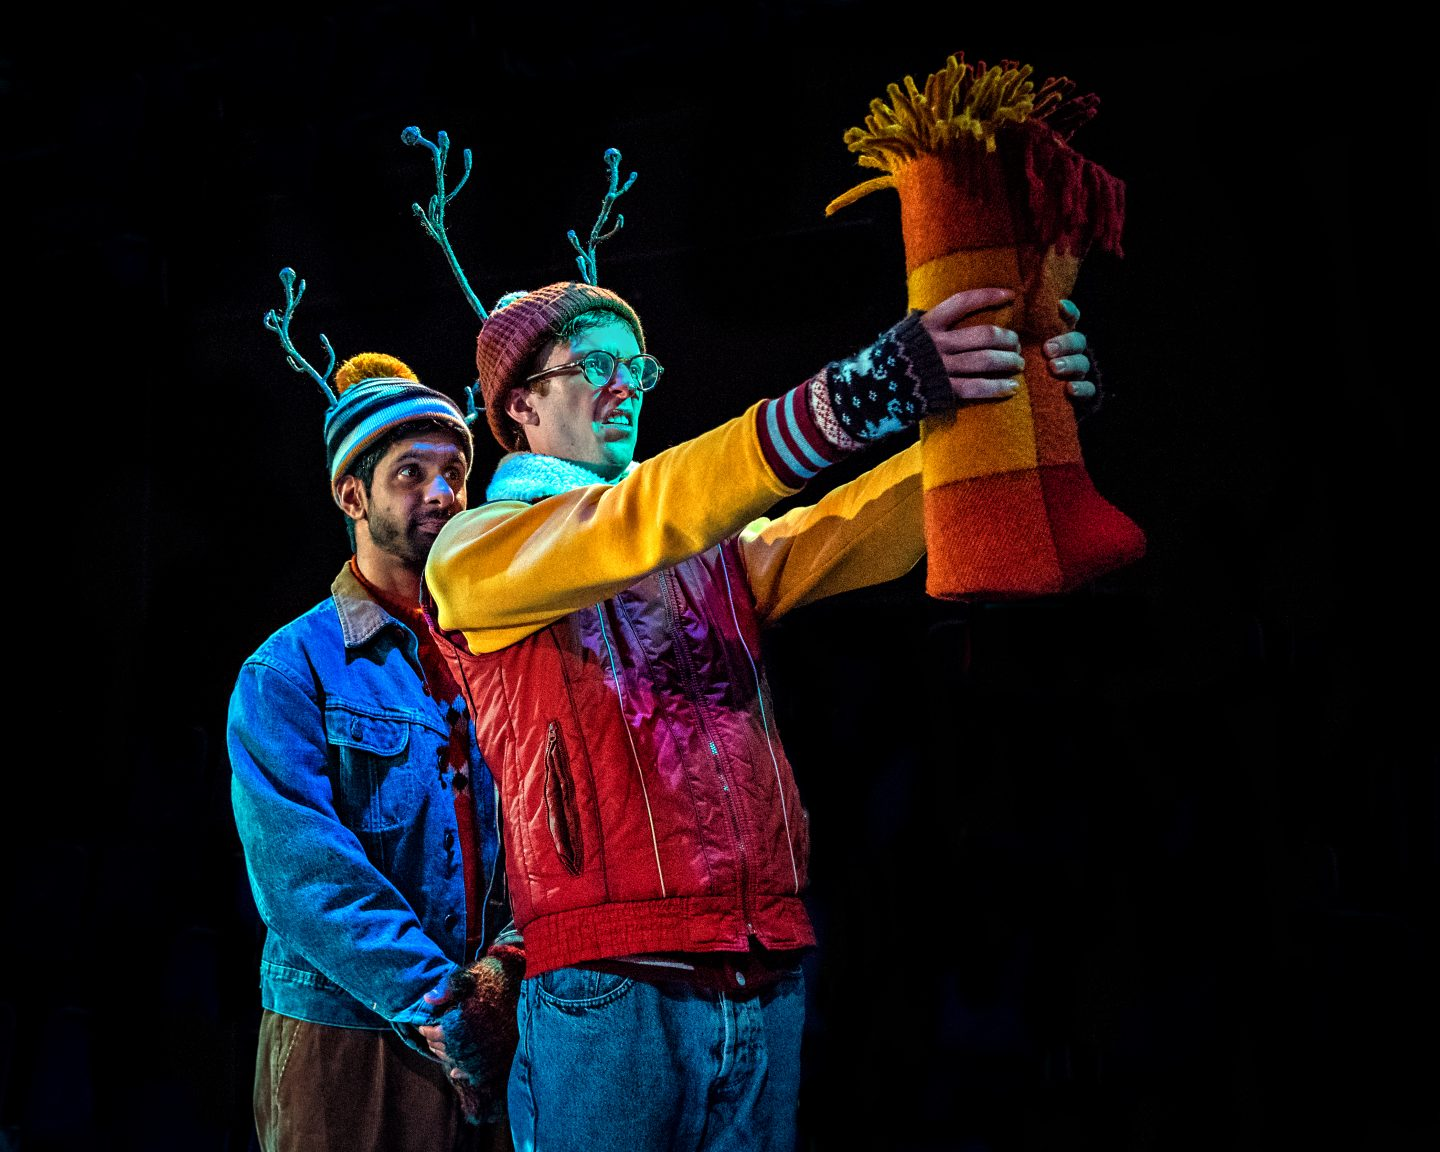 RPS 011- Mitesh Soni and Peter Hobday in Rudolf. Photography by Anthony Robling.